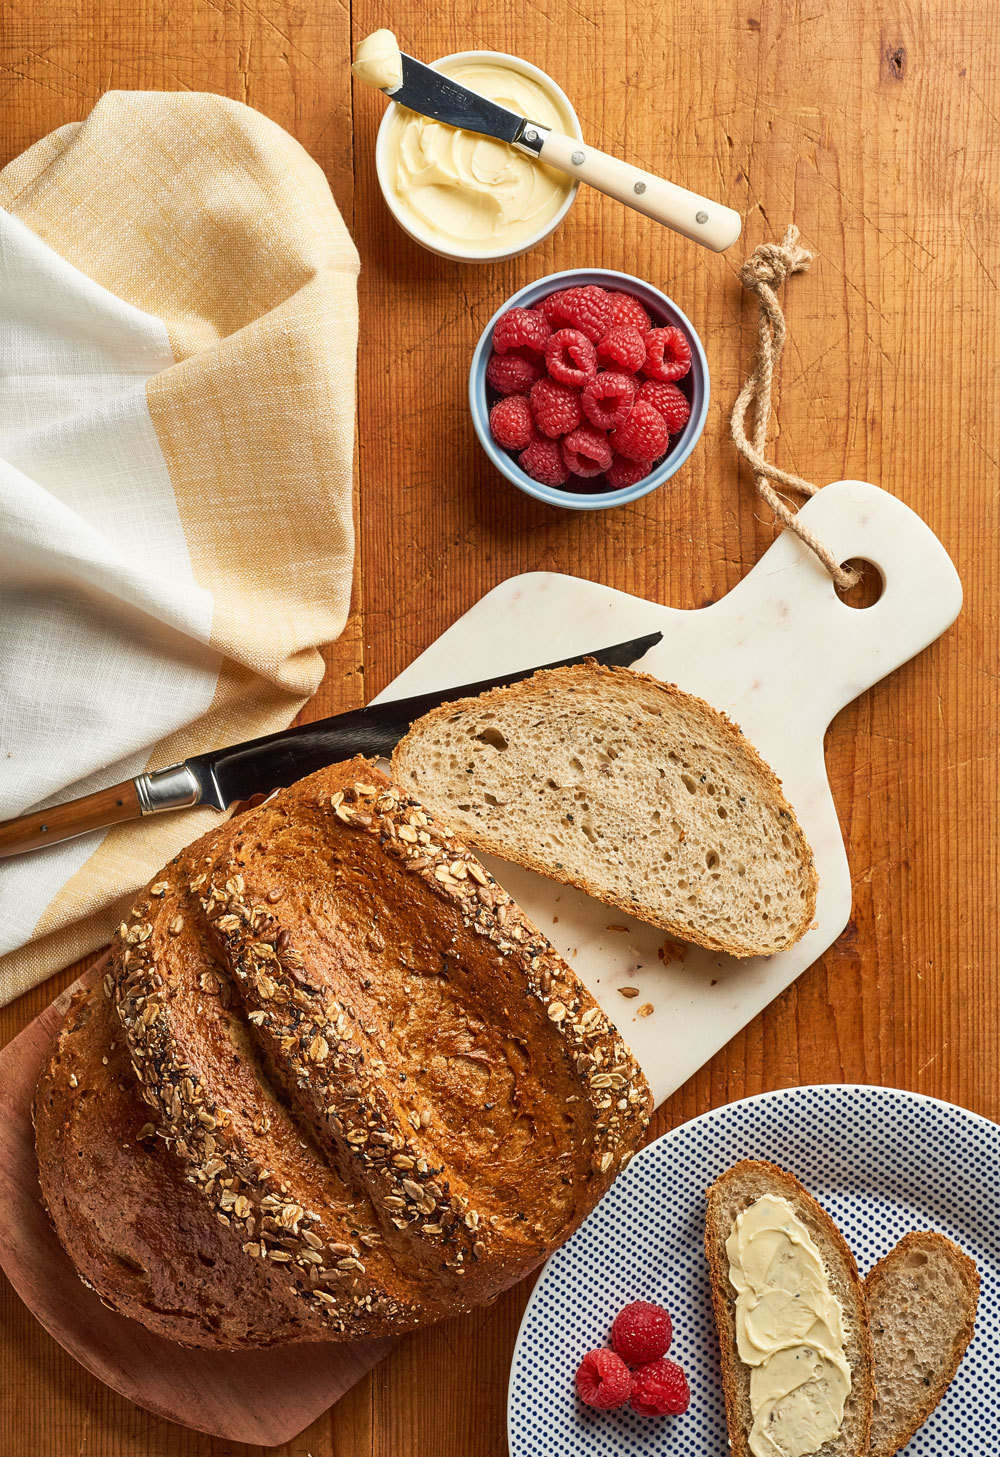 Bread & Berries | Amy Roth Photo.jpg